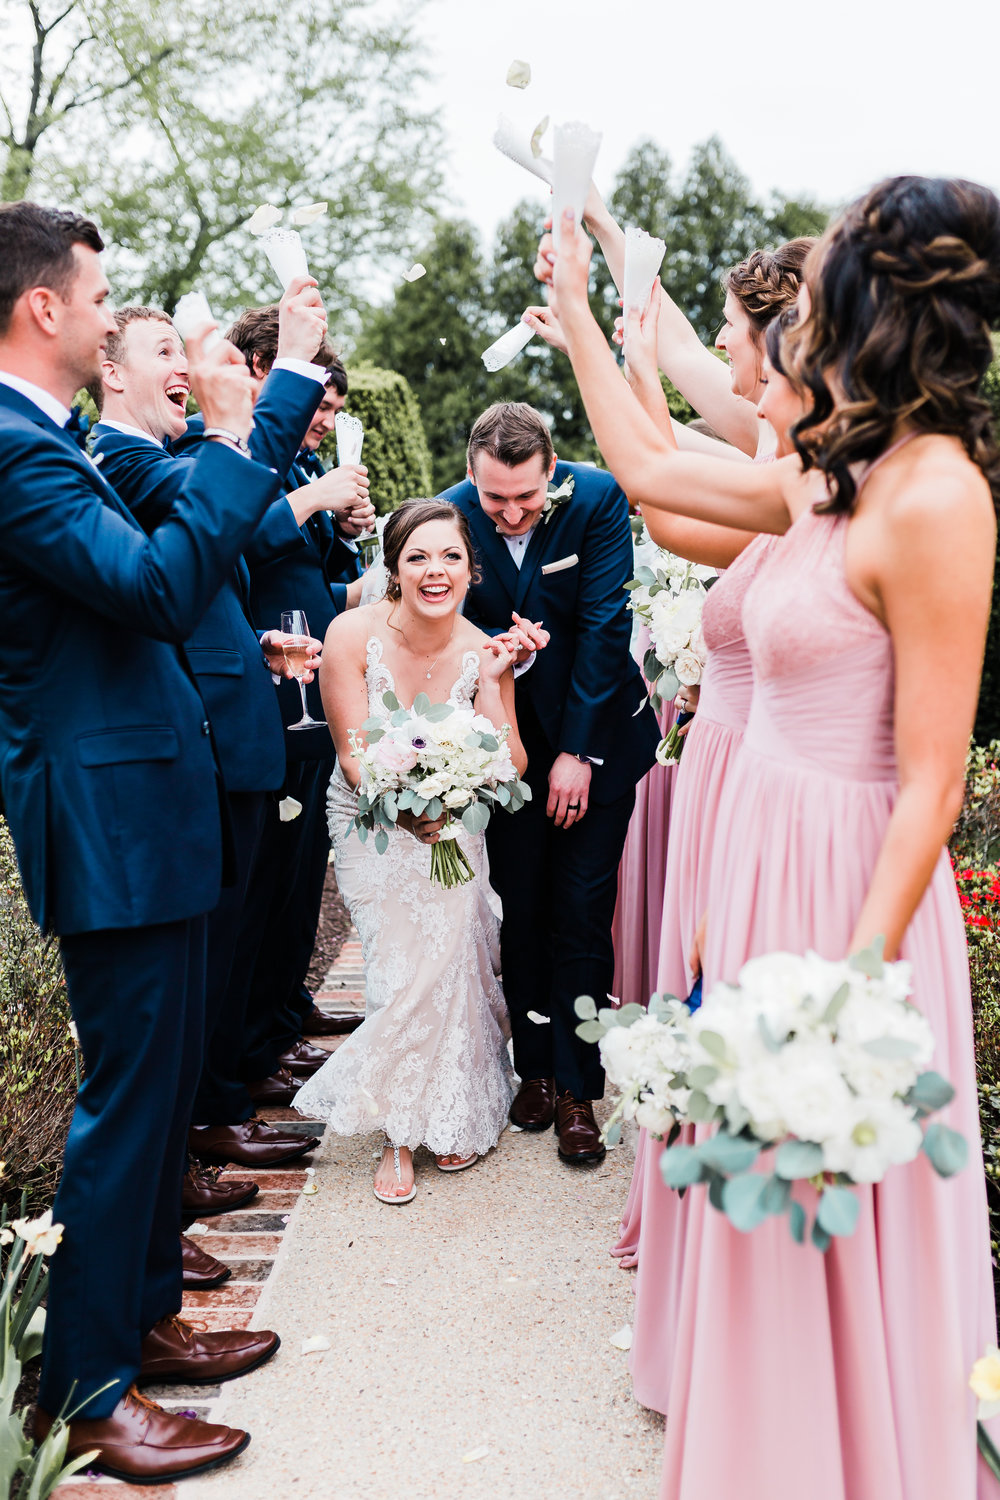 petal toss for bride and groom at antrim 1844 in taneytown md